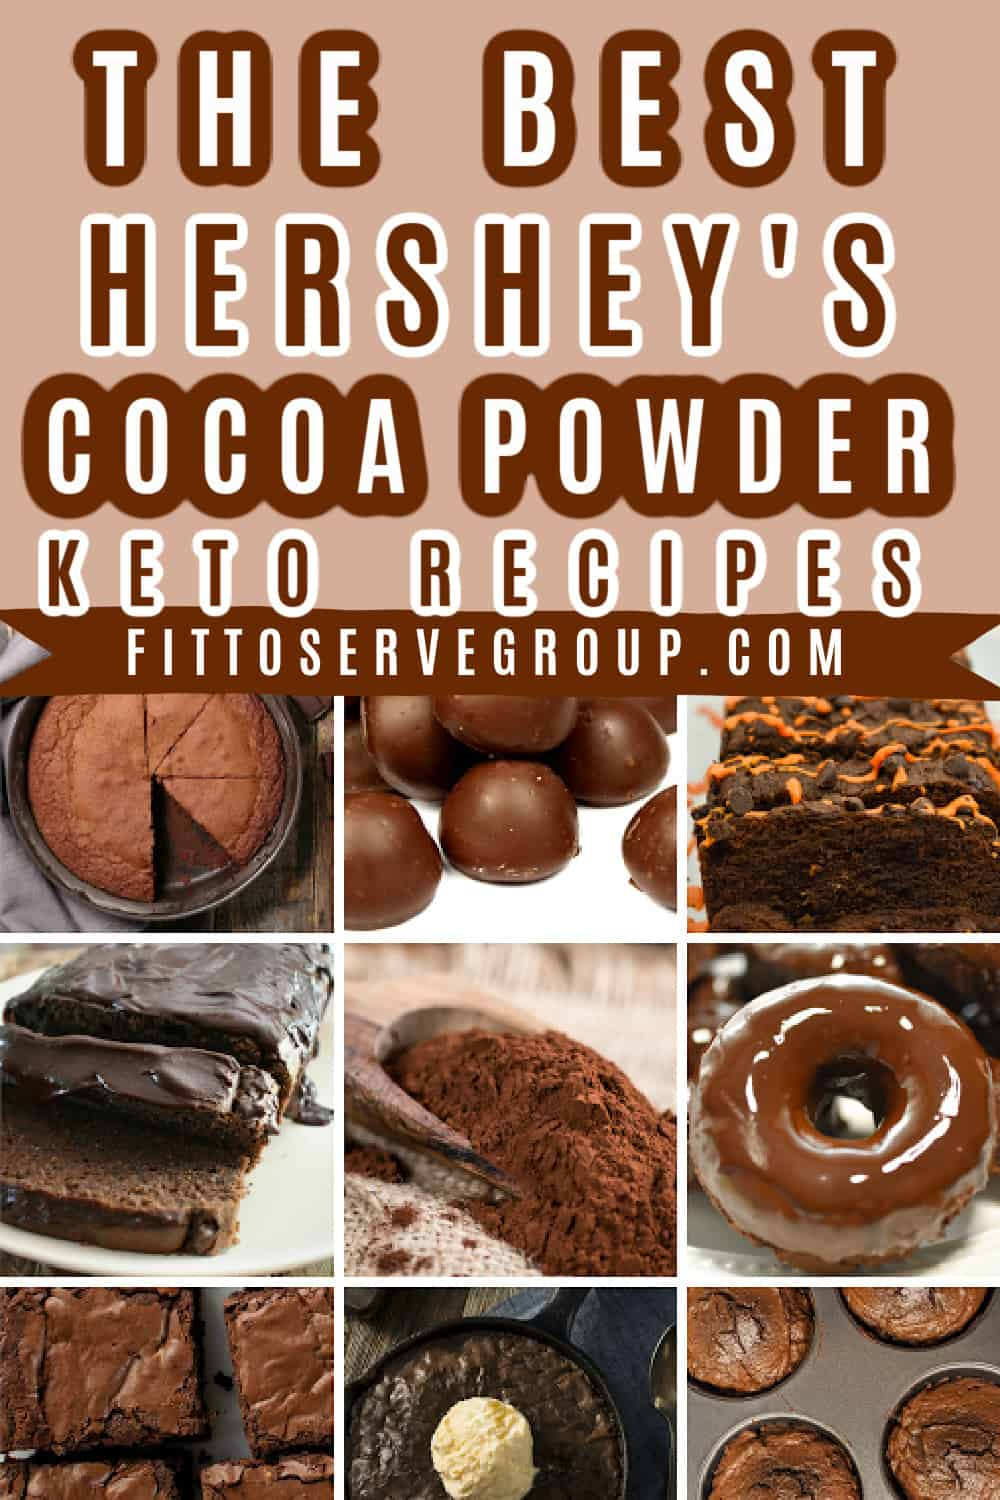 Hershey S Cocoa Powder Keto Recipes Fittoserve Group